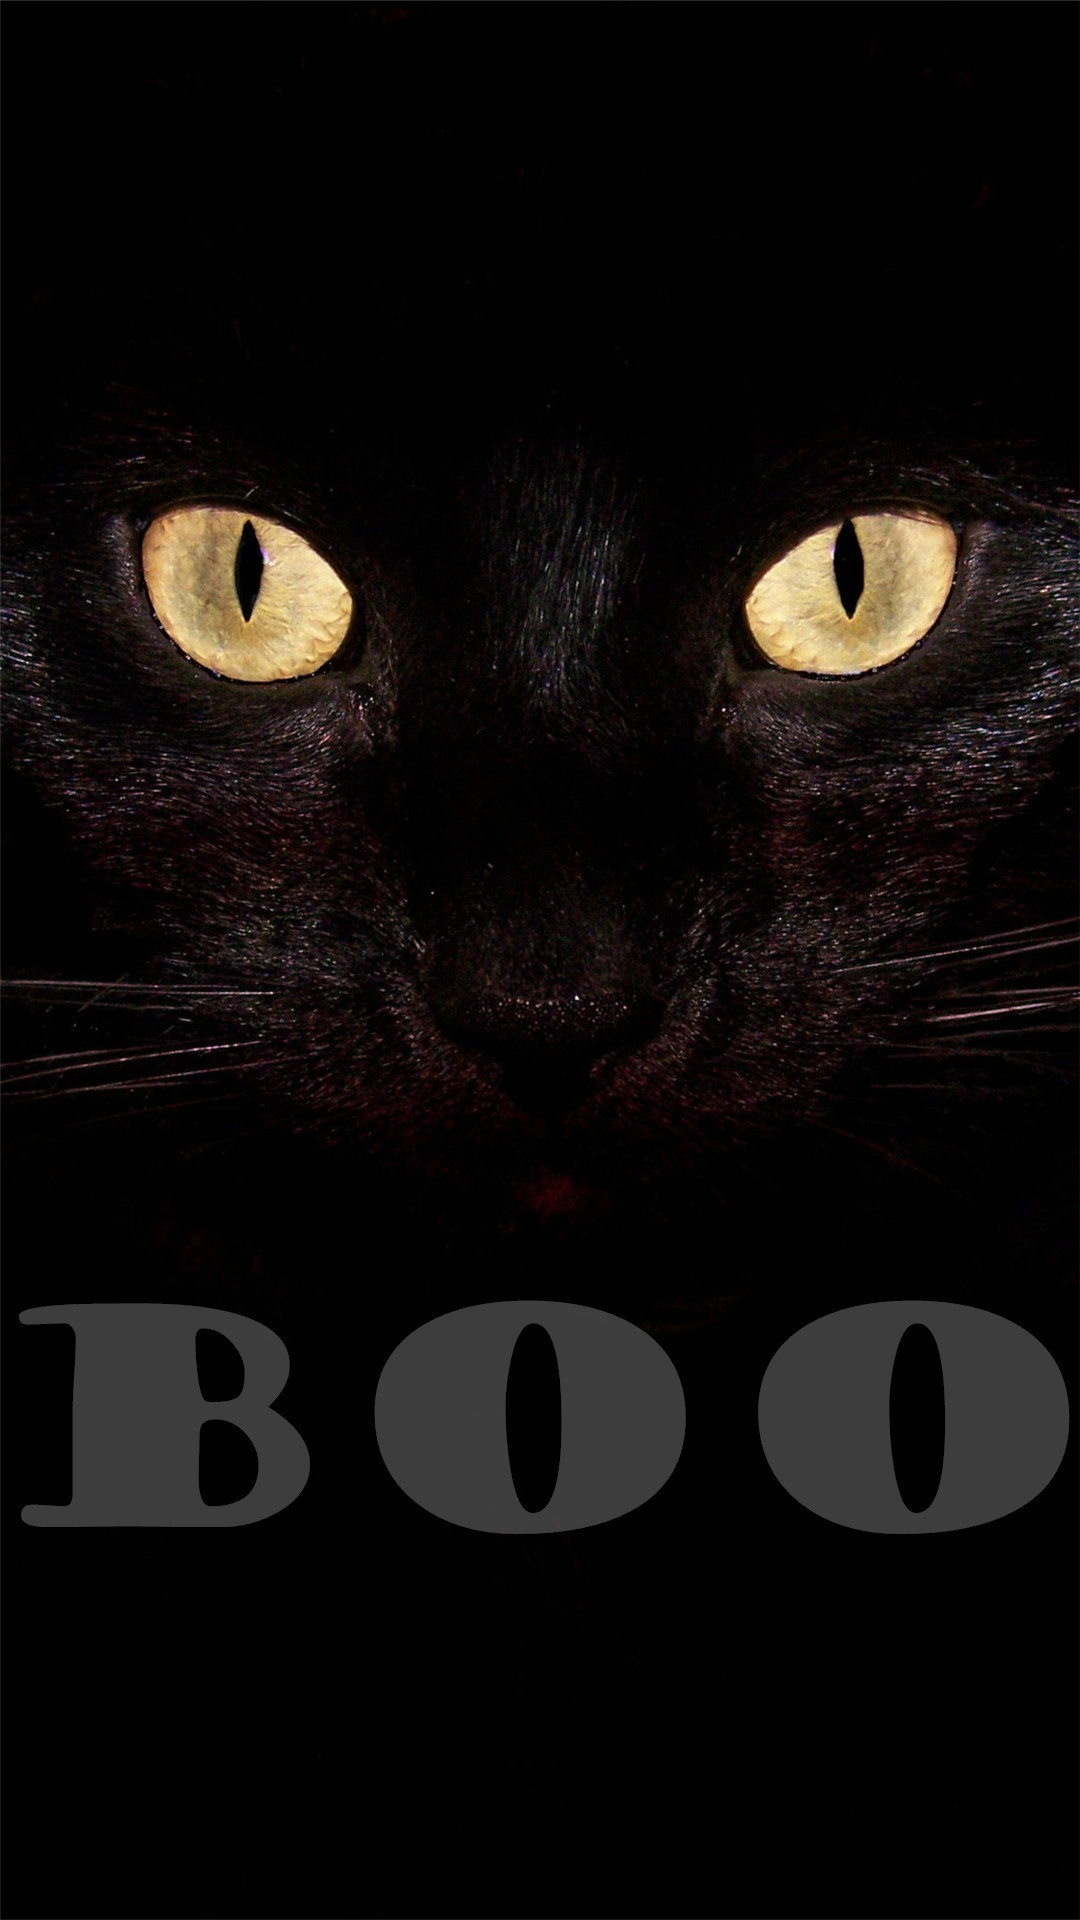 Black cat Boo Halloween iPhone 6 plus wallpapers 2014 #iphone #wallpaper